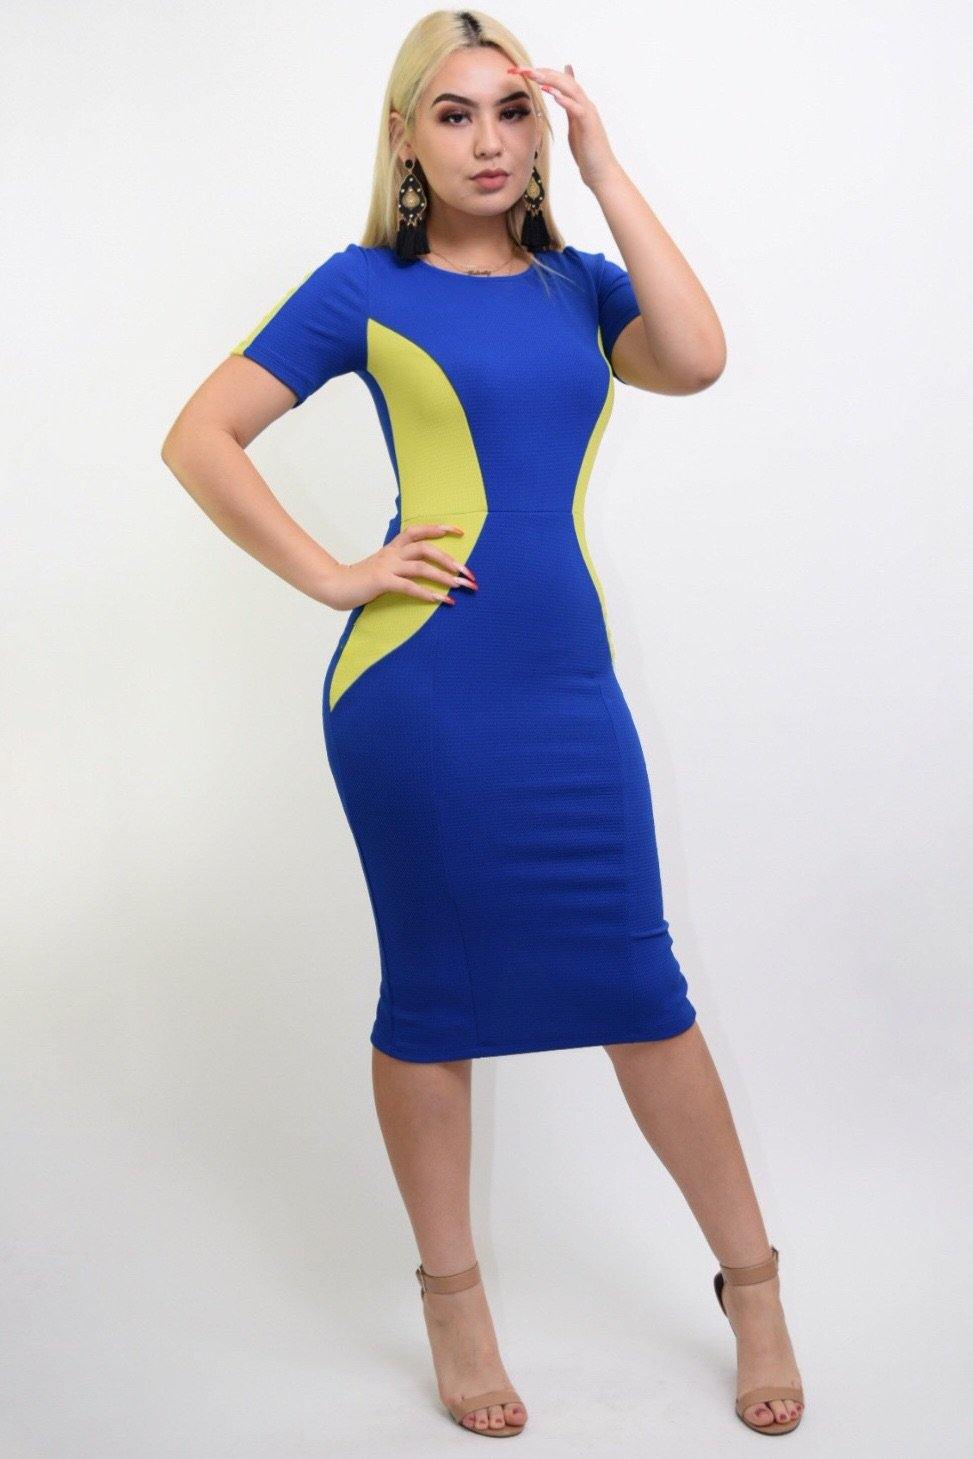 Sasha Blue-green bodycon middy dress